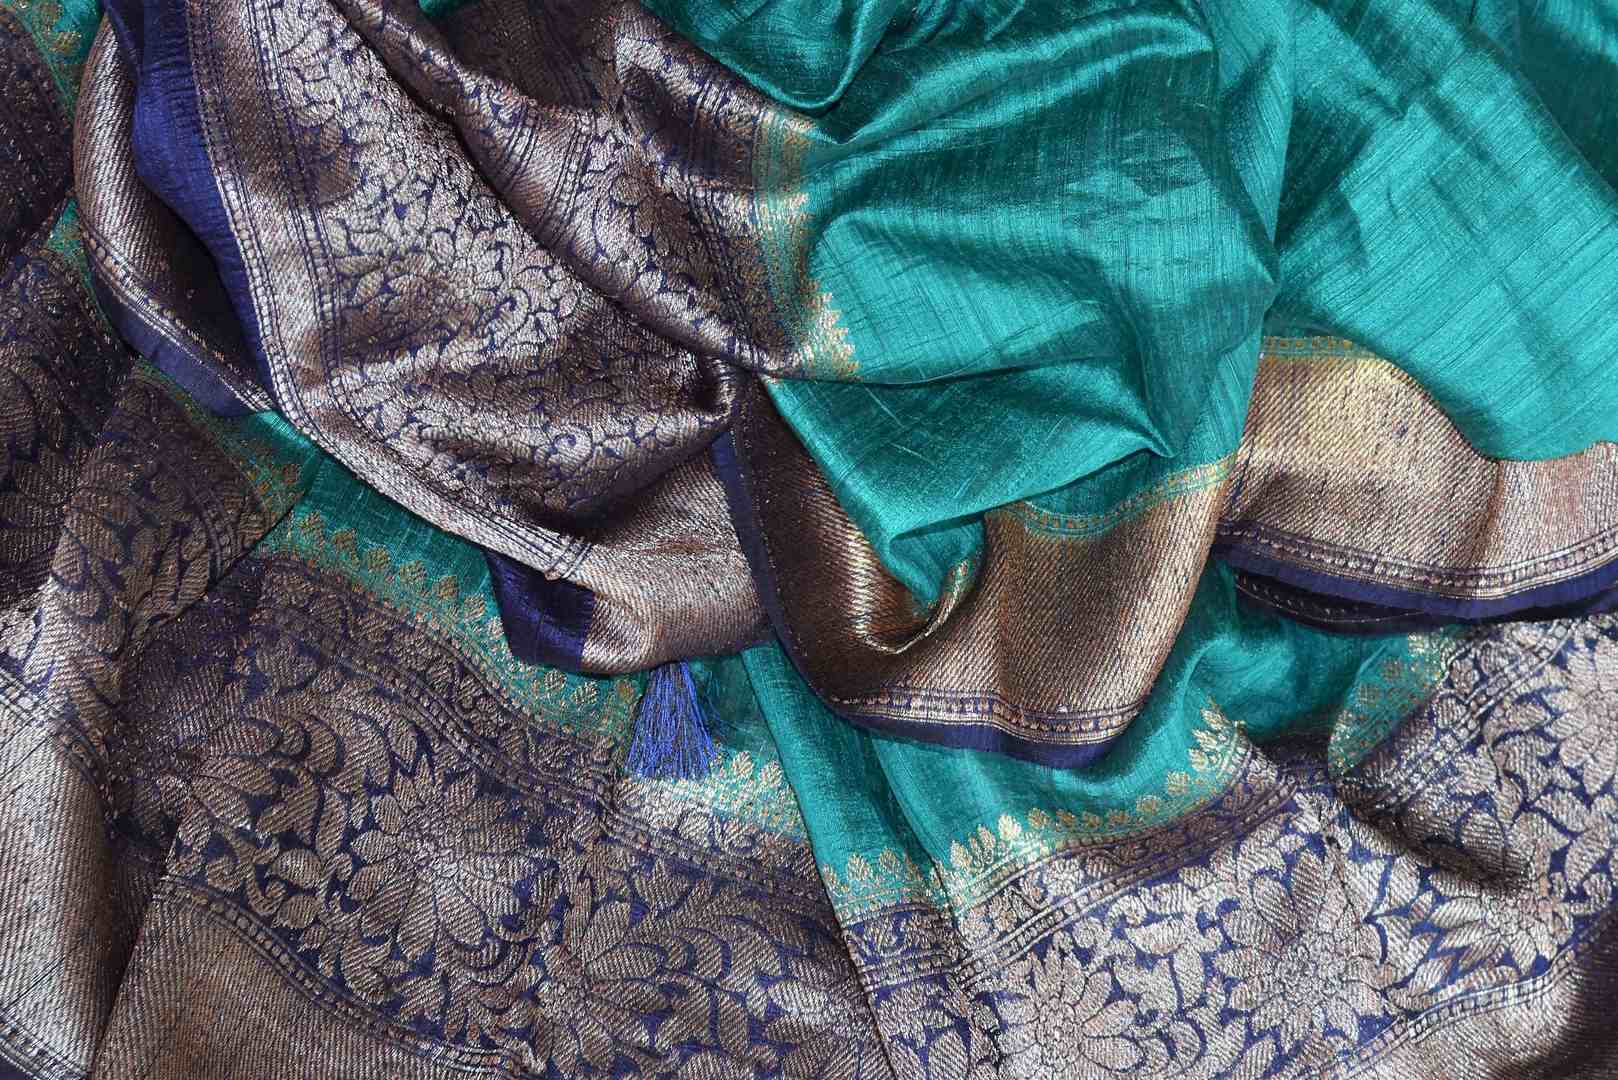 Accentuate your beauty with this exclusively designed mint green matka banarsi silk saree. It comes with a gorgeous zari handwoven border and a contrasting royal blue zari blouse. Complement the sari with pearl jewelry. Shop designer banarsi silk sari, organza saree, linen sari online or visit Pure Elegance store, USA.-details